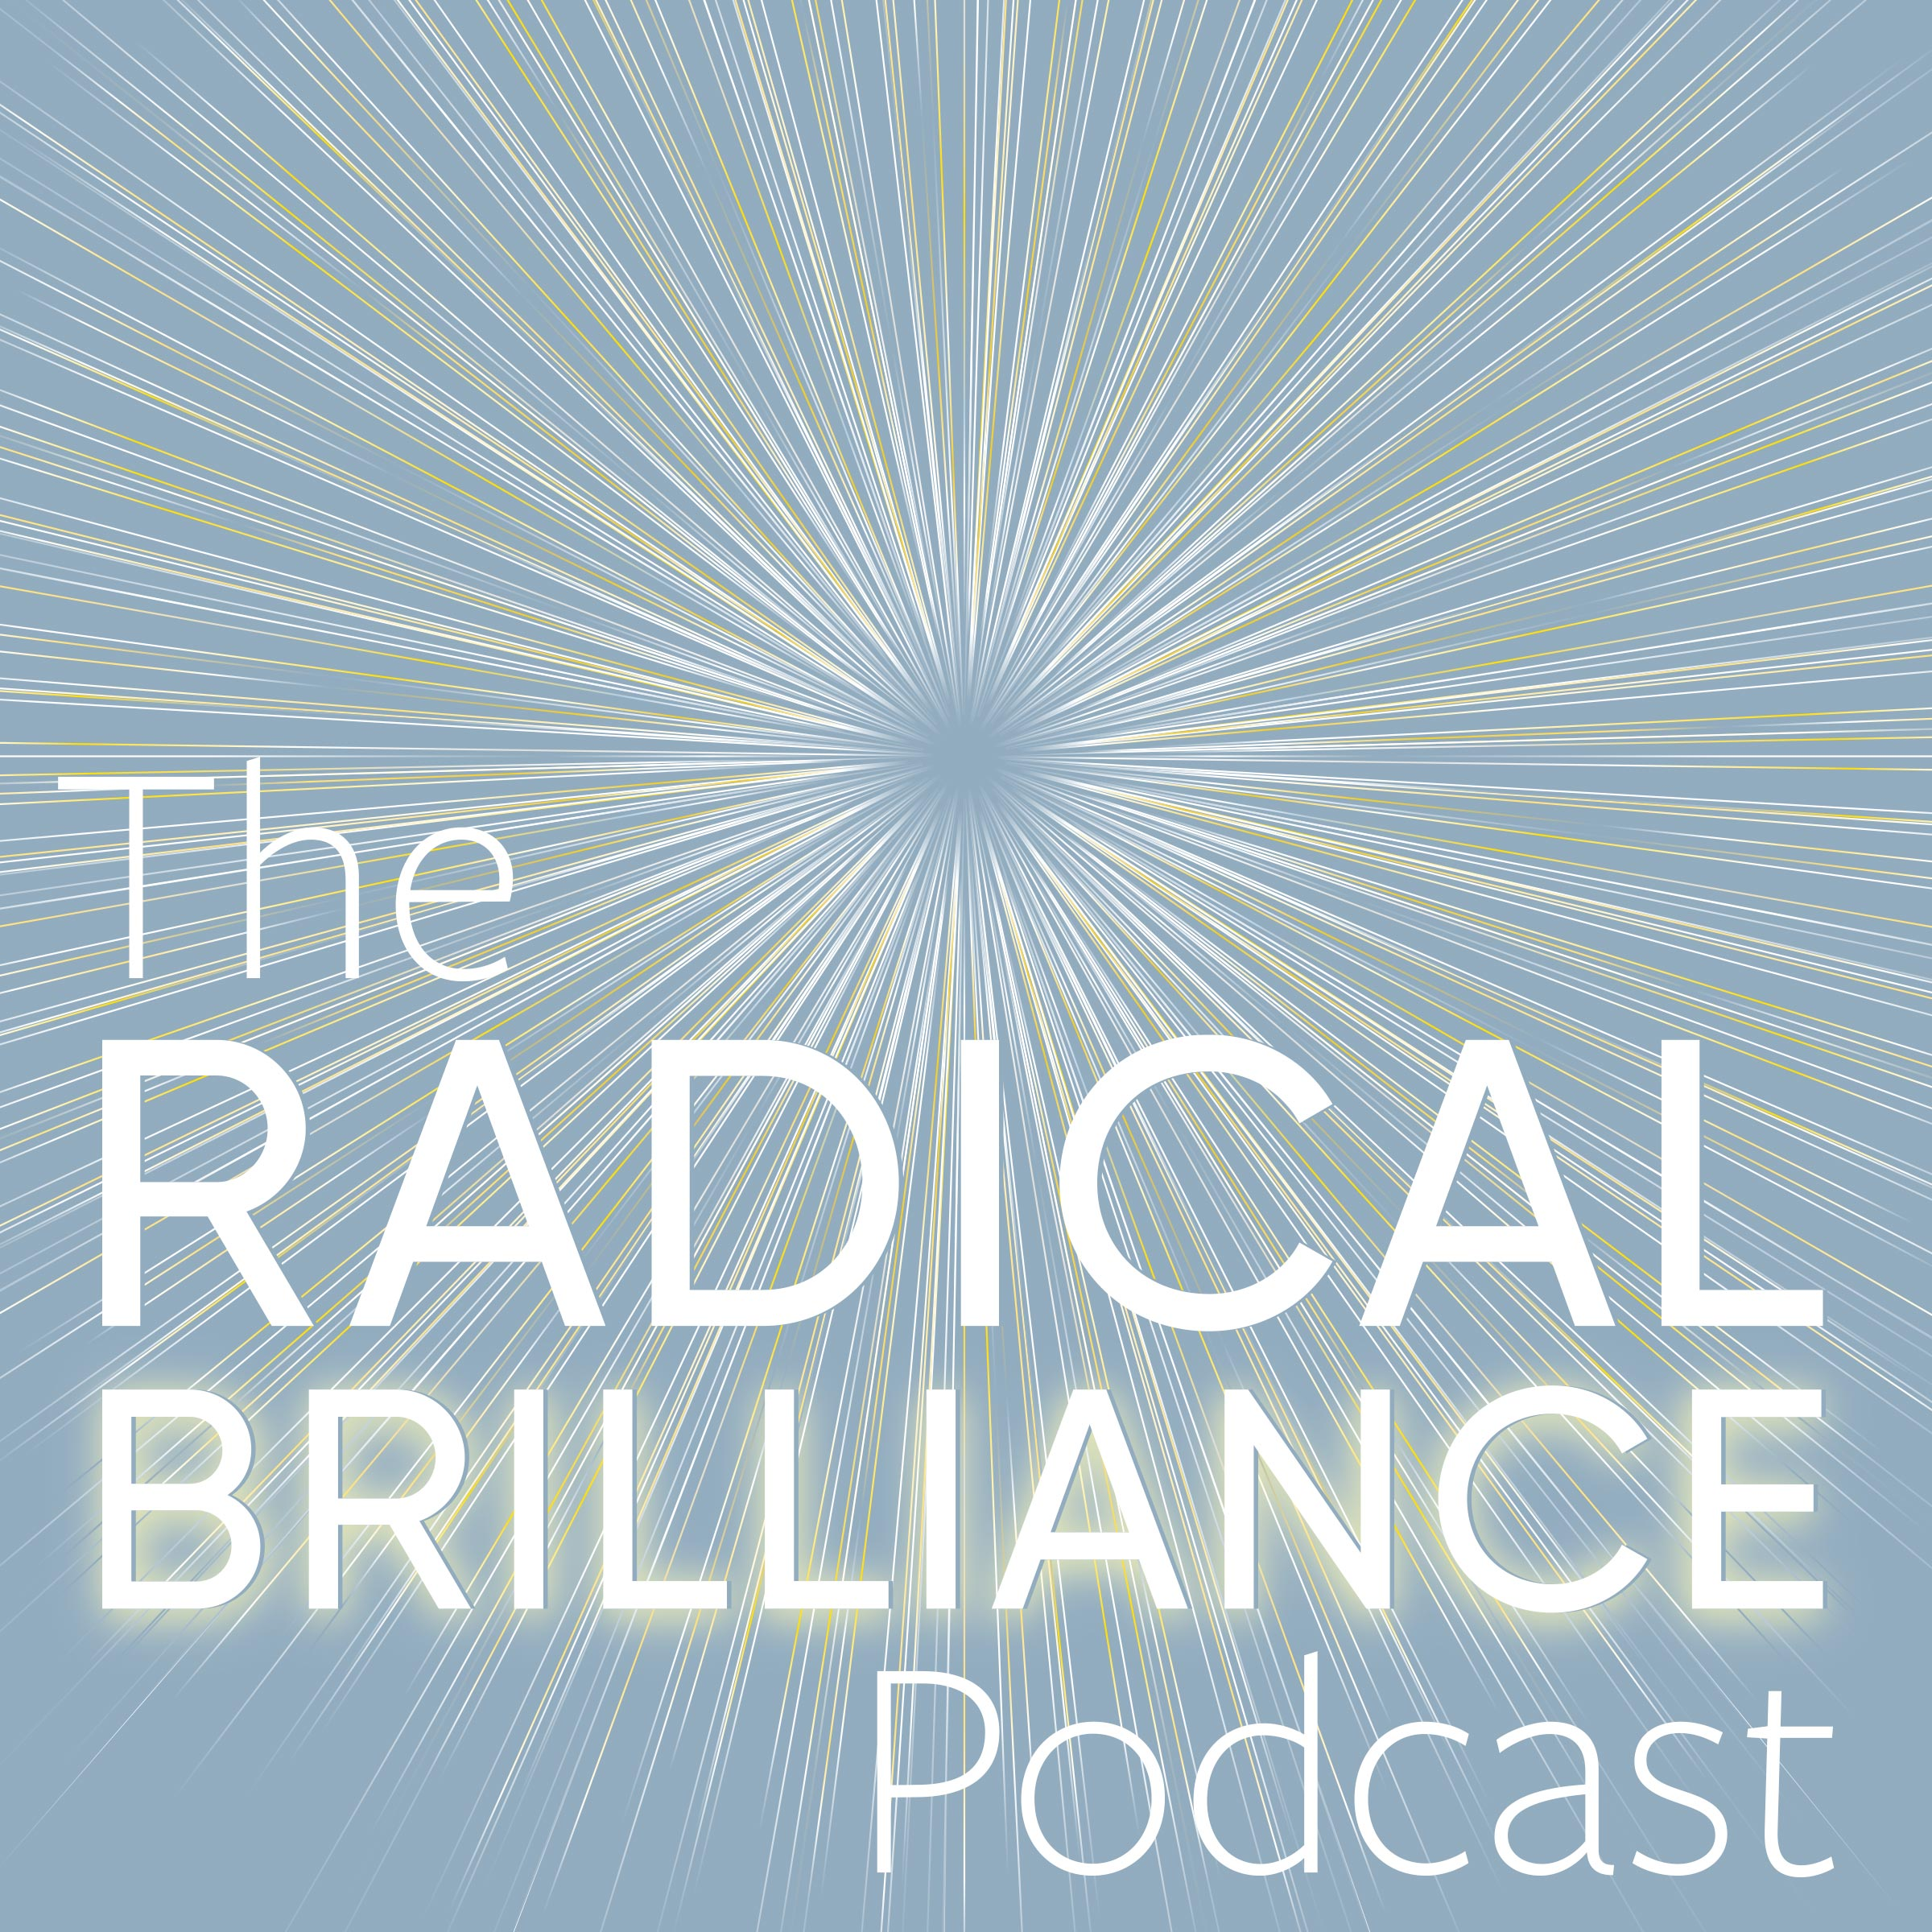 The Radical Brilliance Podcast